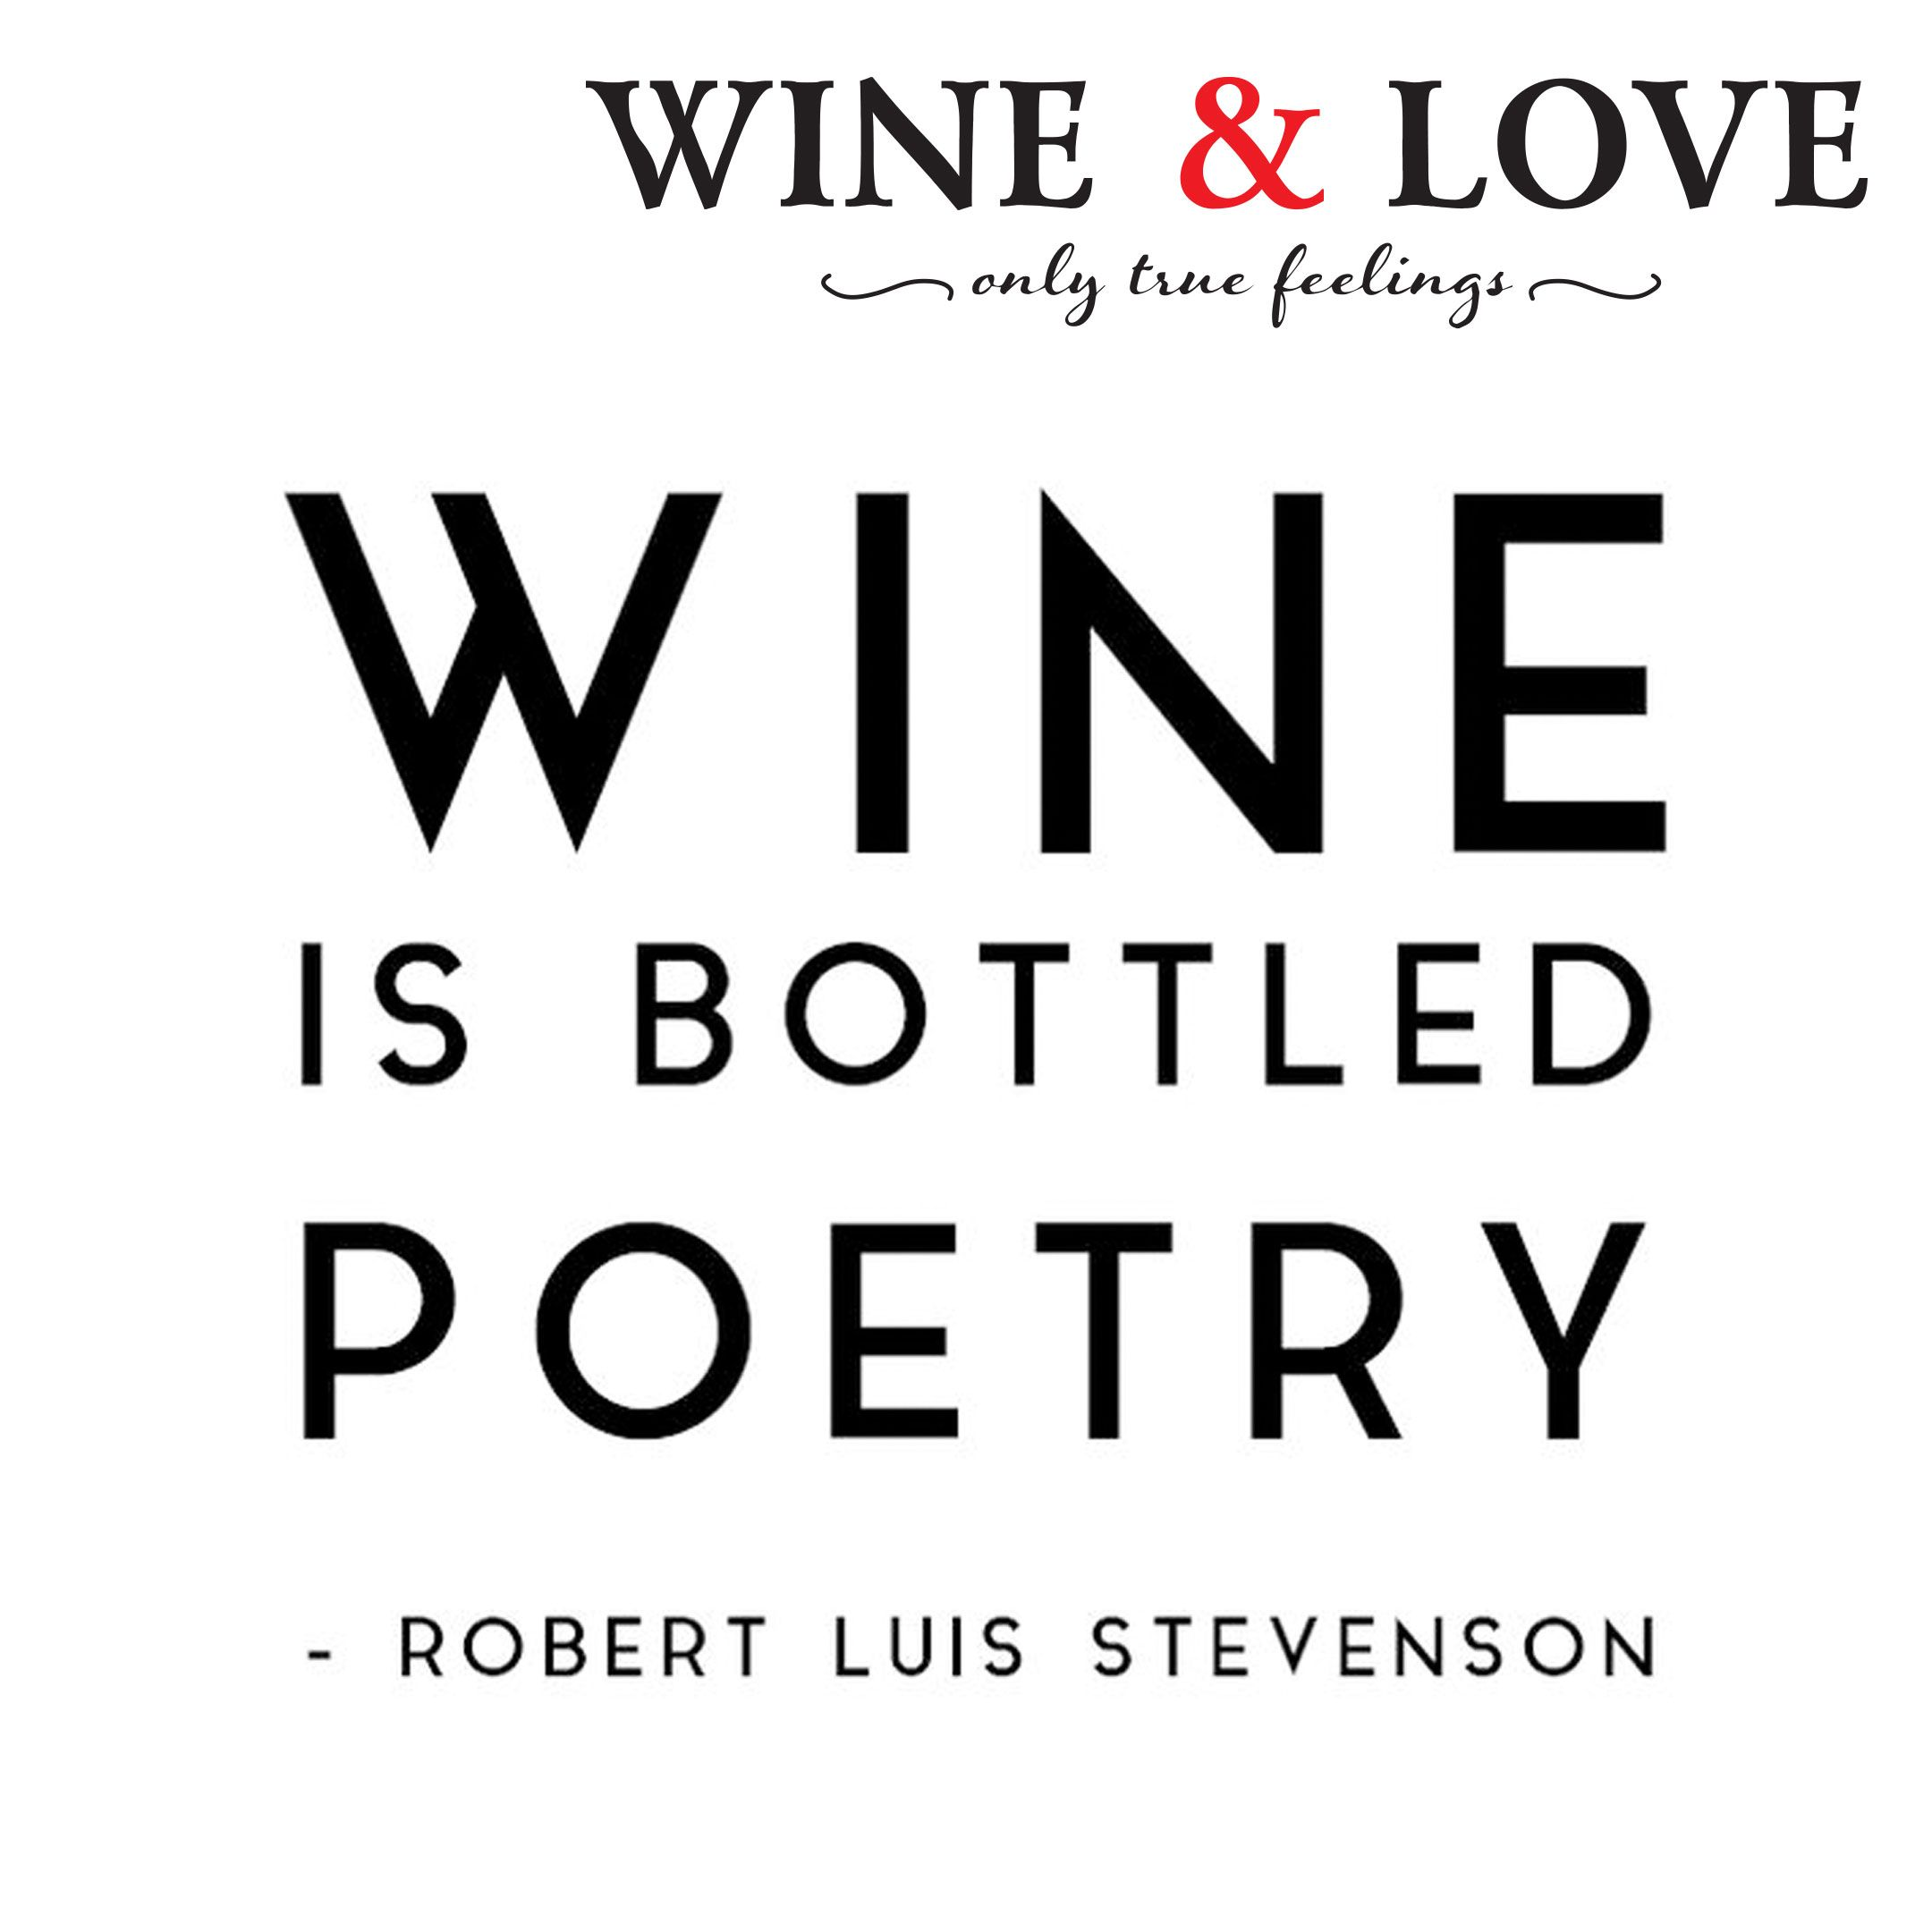 Wine Love Quotes We Truly Agree With This Quote Our Wines Are Made With Love And